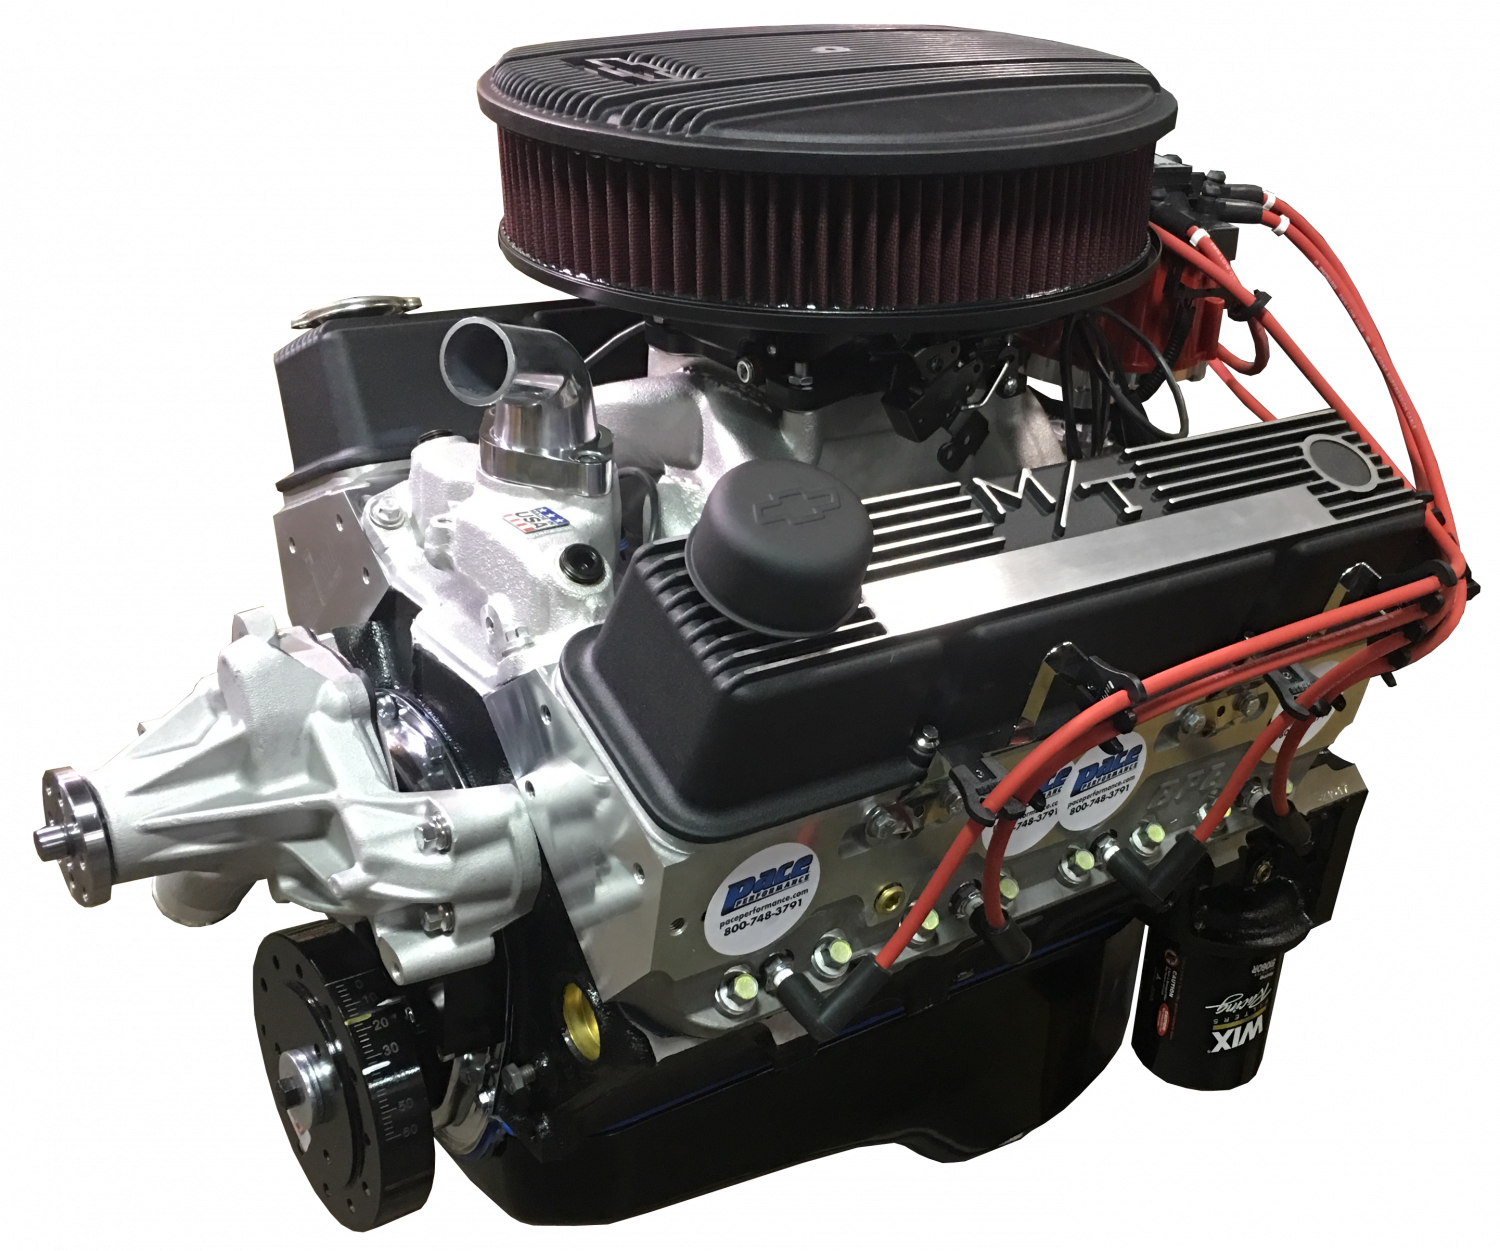 Bp3961ct 2fx blueprint sbc 396cid 500hp crate engine 1pc rear seal pace performance bp3961ct 2fx blueprint sbc 396cid 500hp crate engine 1pc rear seal malvernweather